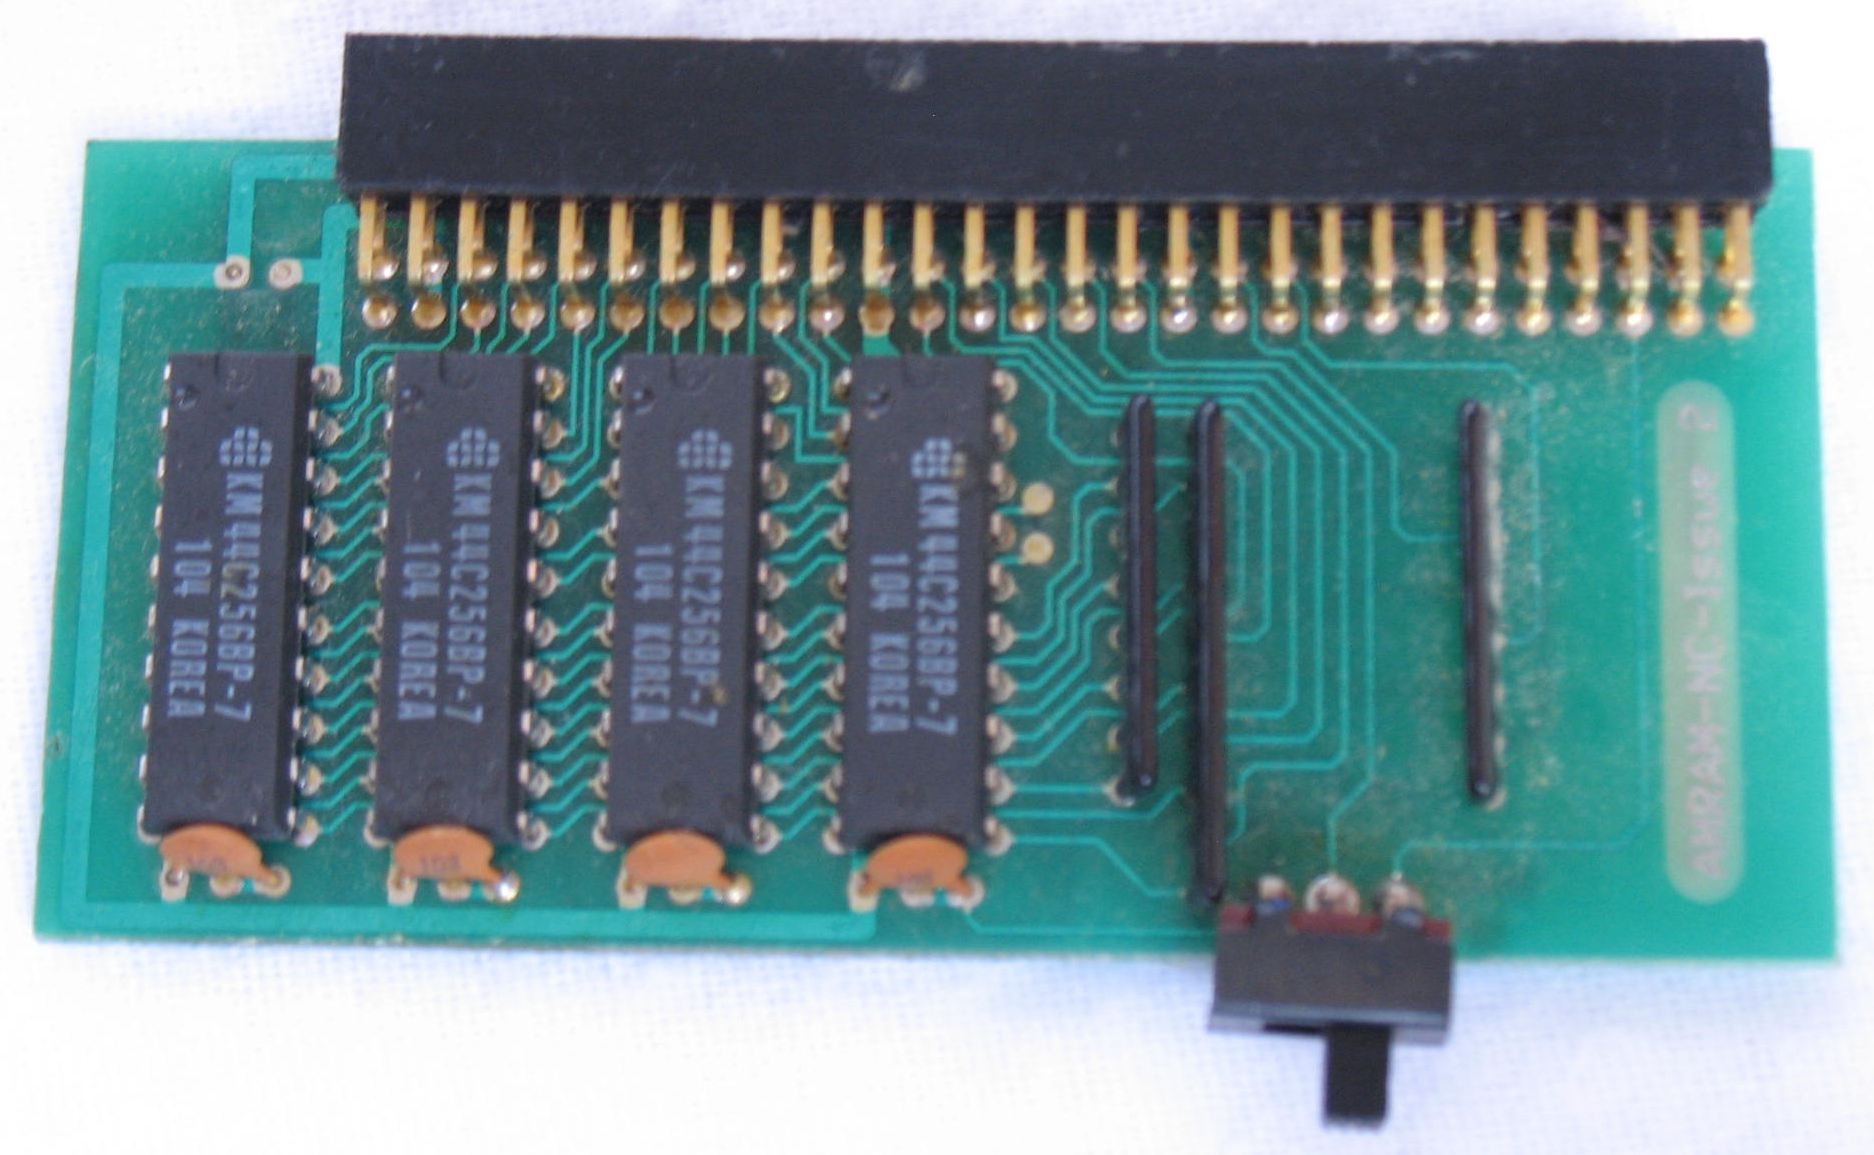 Memory Card - AmiRAM 1000 - EU - Amiga - Without Clock DM CSB - Memory Card - Front - Photo